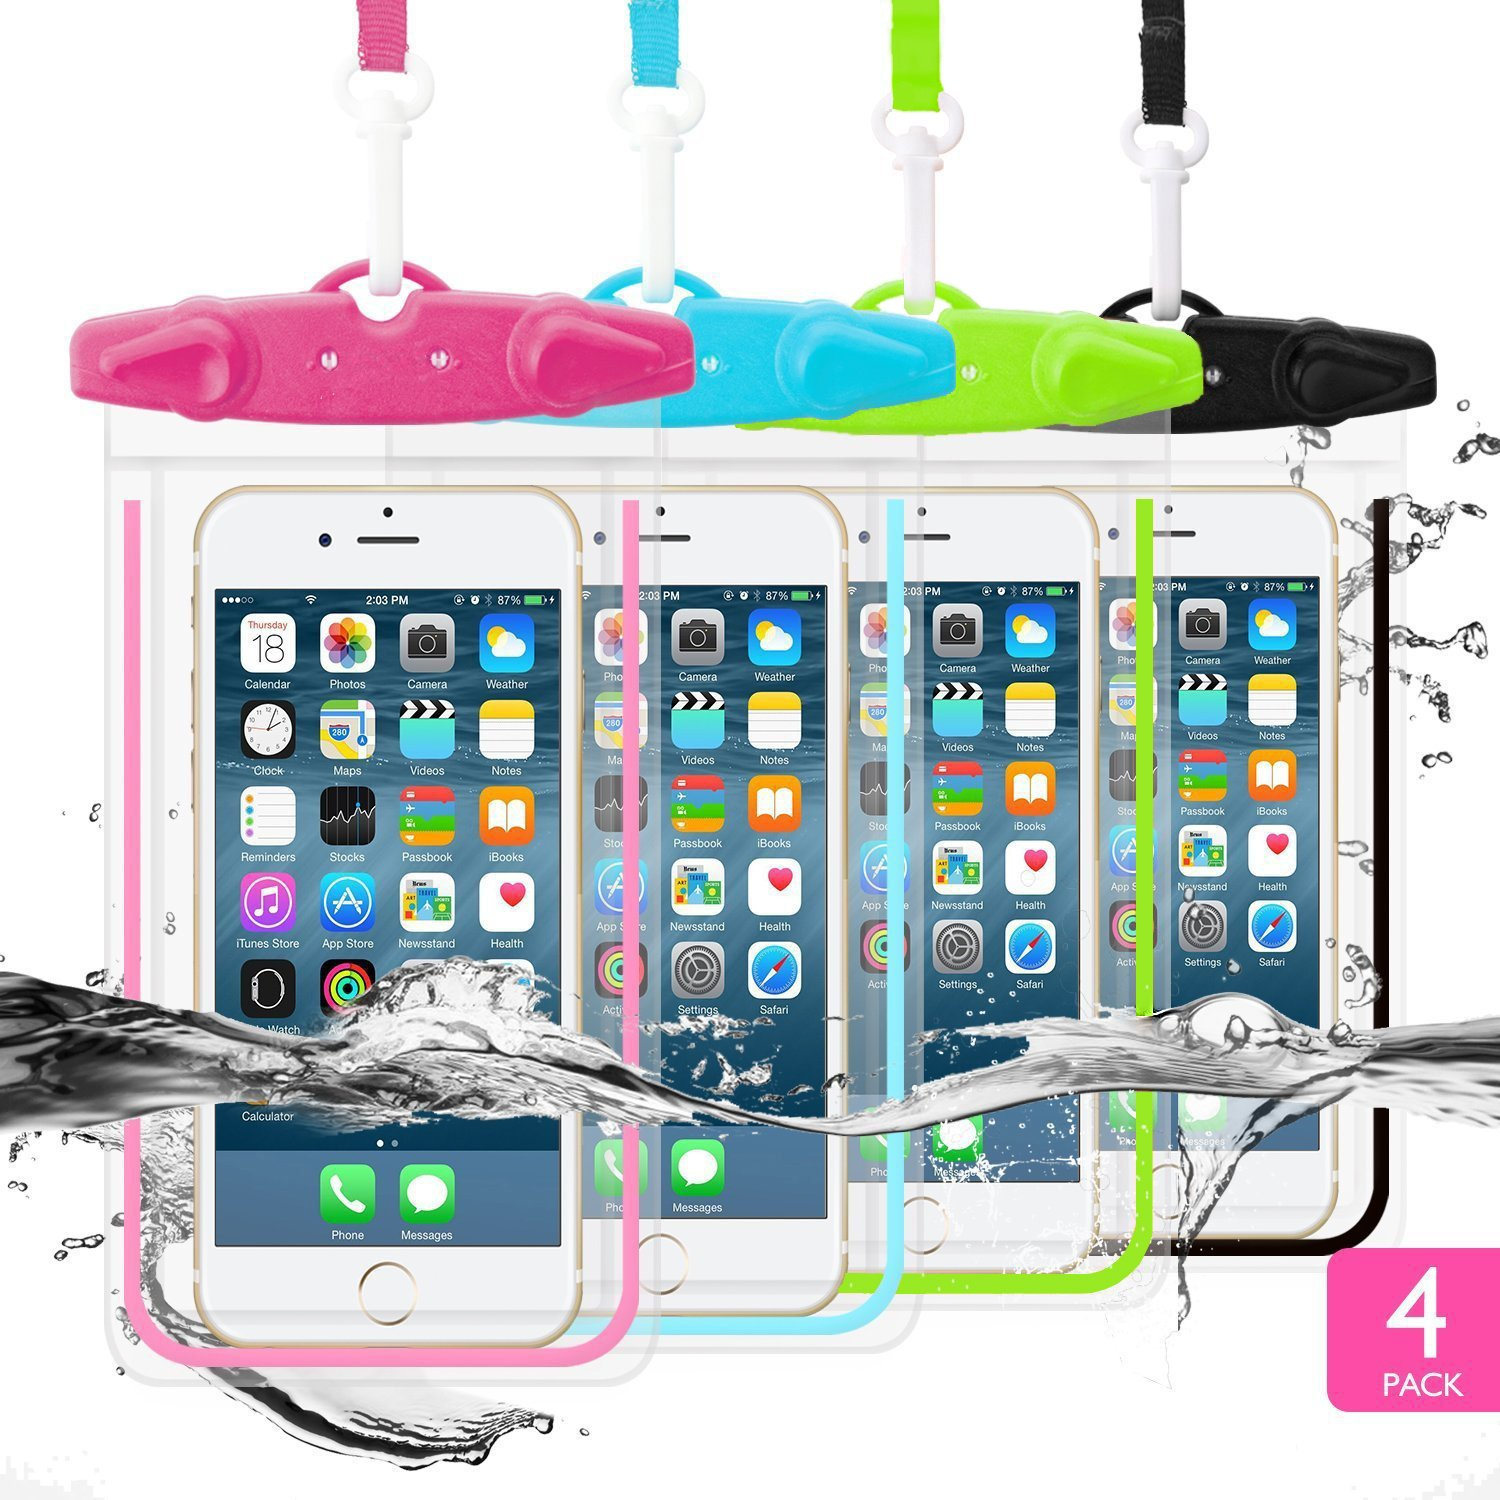 WJZXTEK Waterproof Case 4 Pack Universal Waterproof Cell Phone Case Phone Pouch Underwater Dry Bag Compatiable With iPhone XS XR X 8 8 Plus 7 7Plus Galaxy S8/S7 Edge/S6 Note4 (Blue+Pink+Red+Black) by WJZXTEK